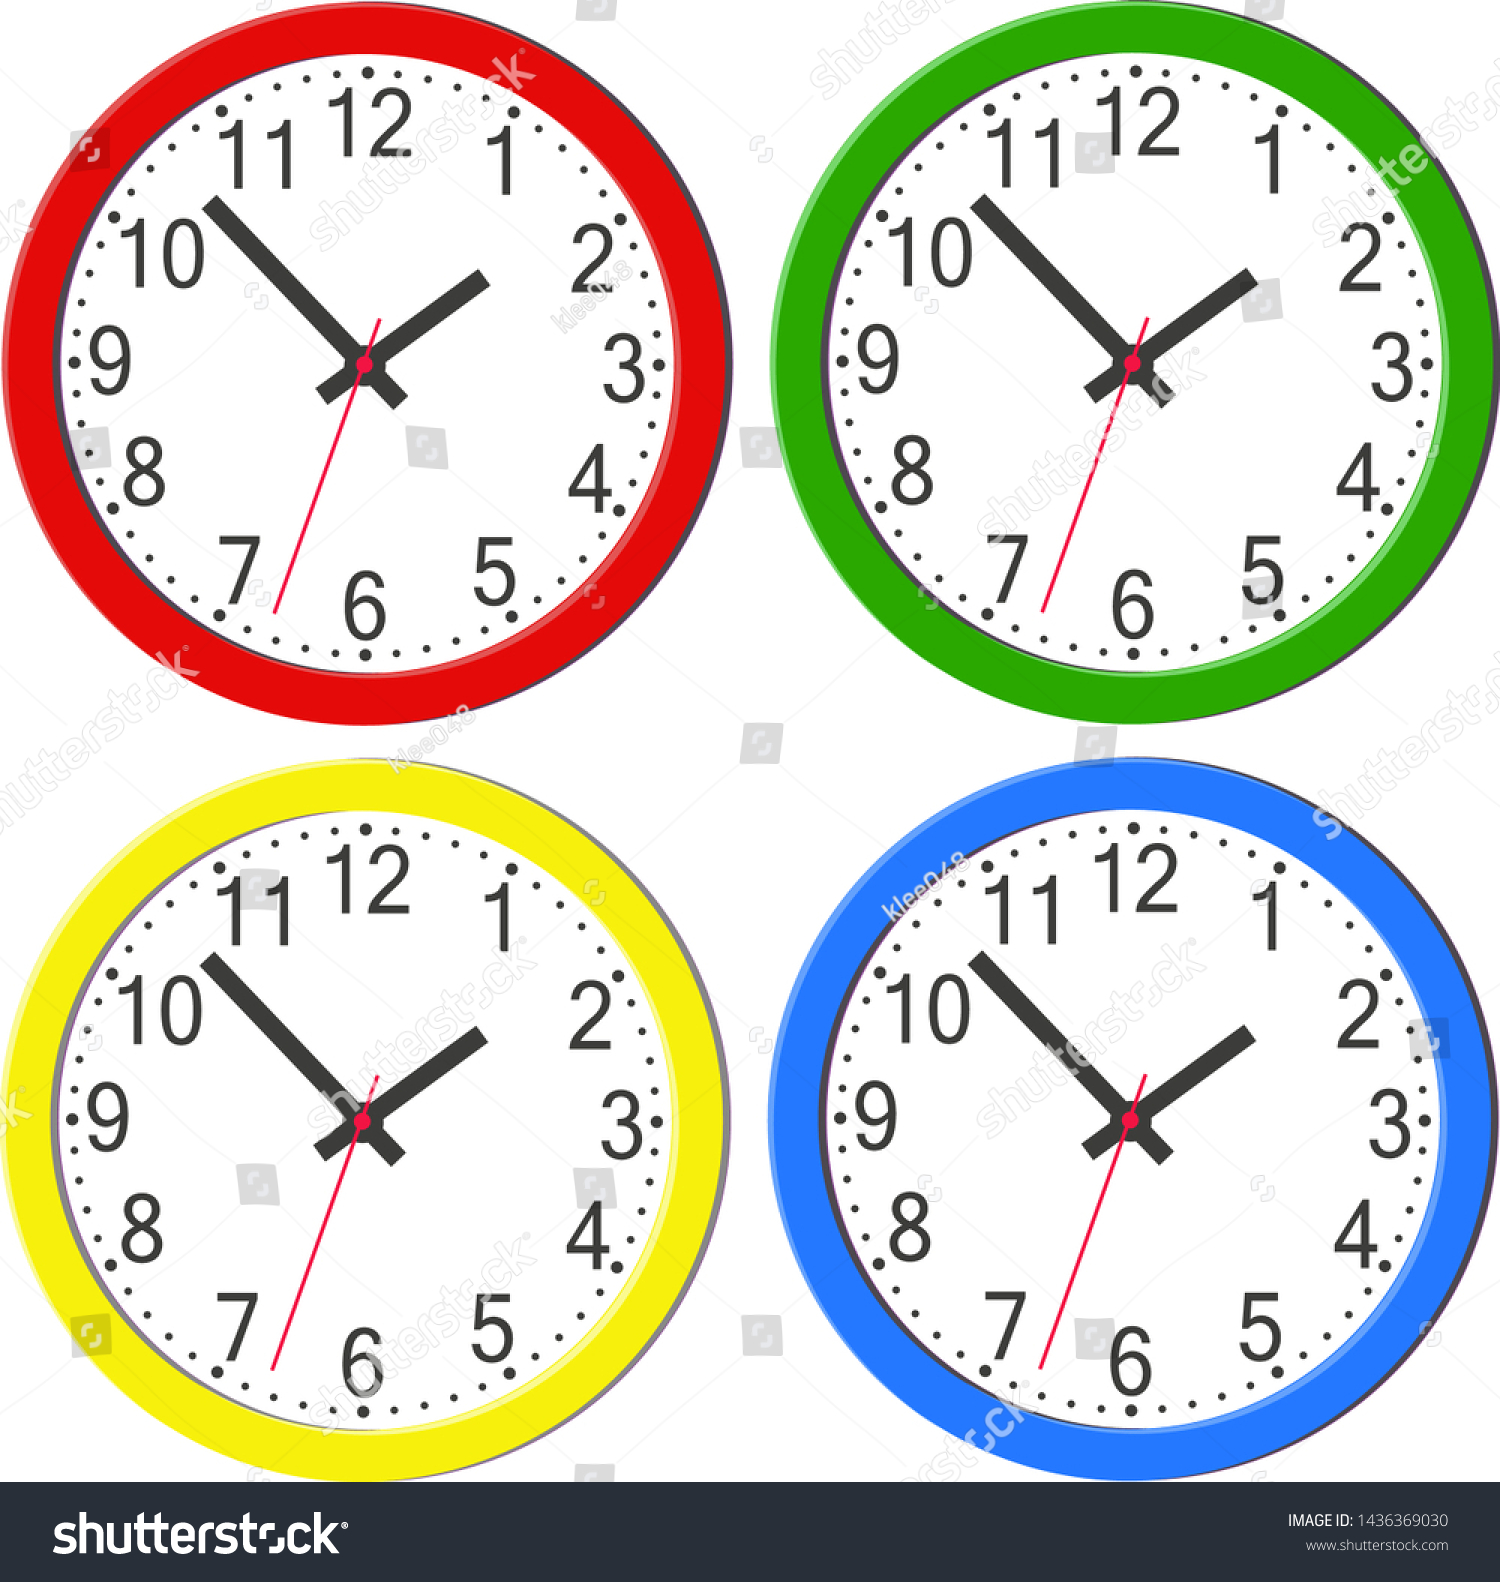 Colorful Round Wall Clocks Modern Design Stock Vector Royalty Free 1436369030